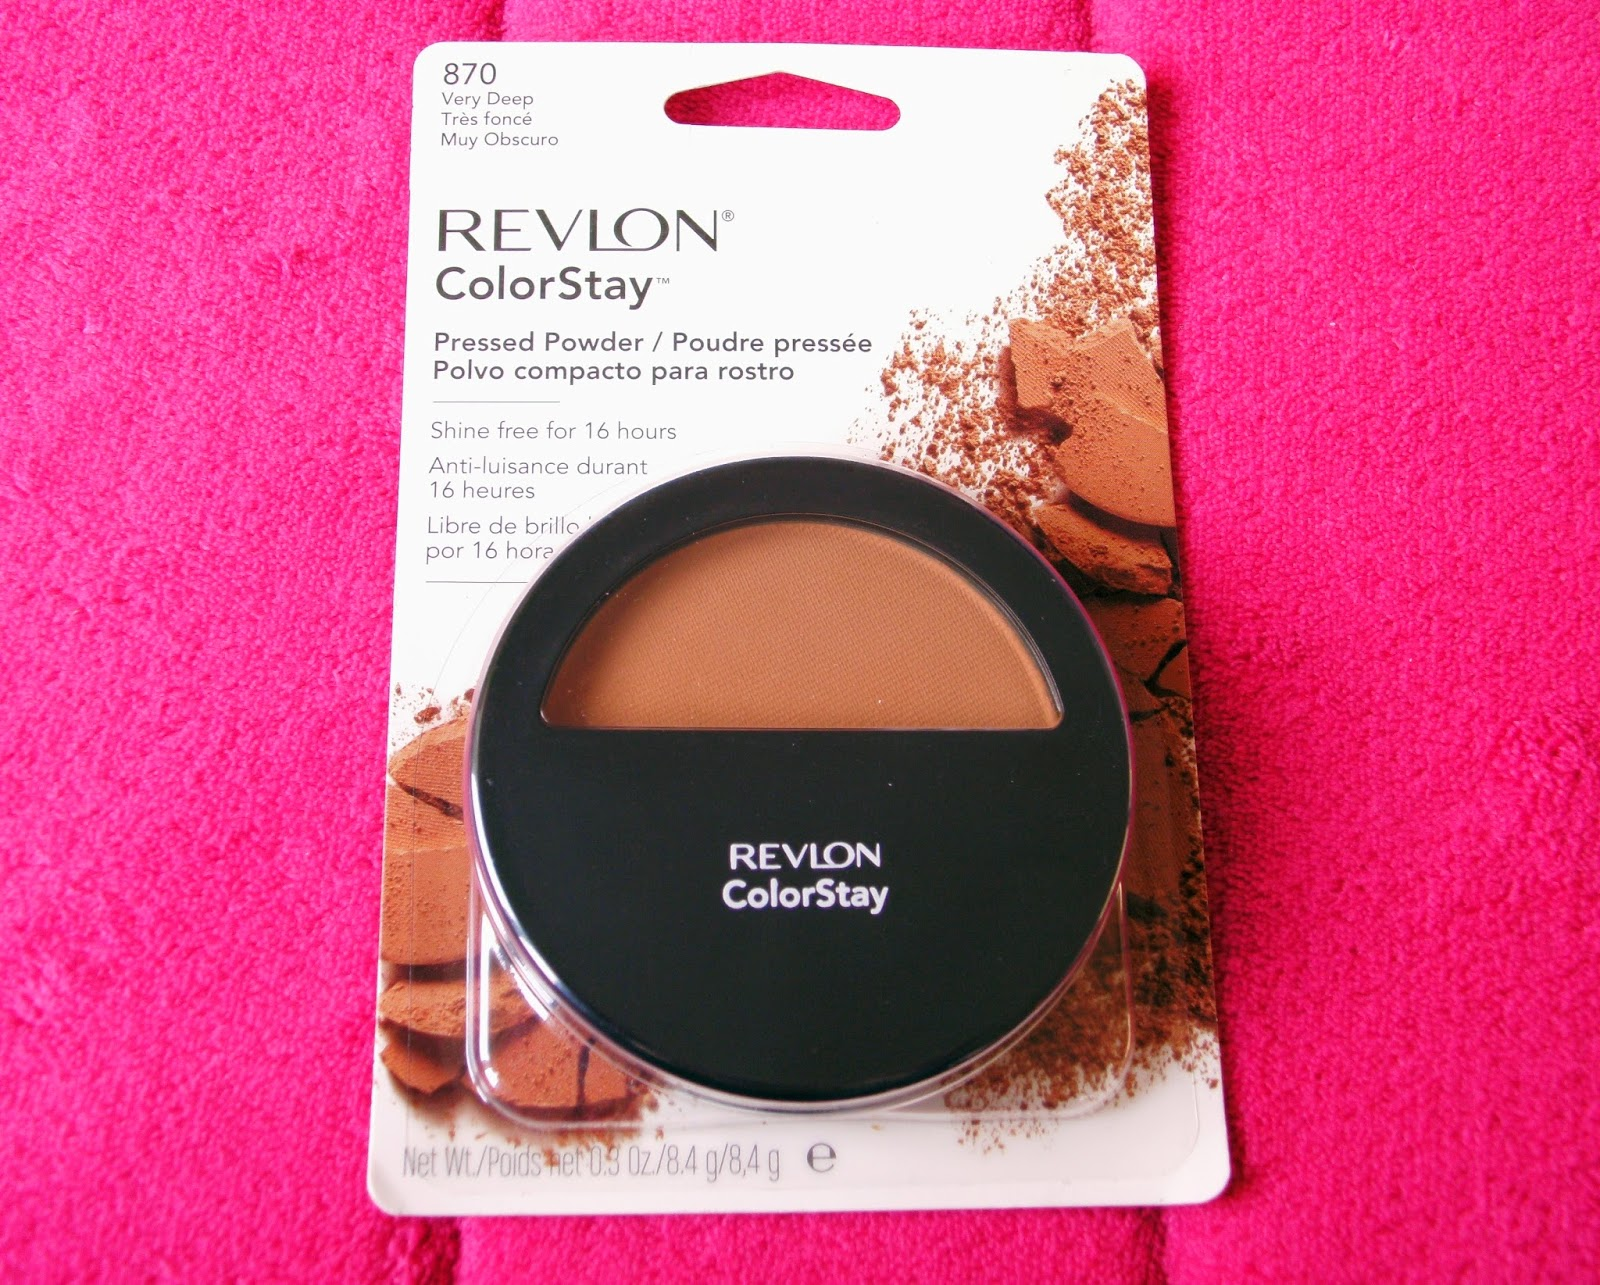 Revlon Colorstay Pressed Powder in the shade 870 Very Deep